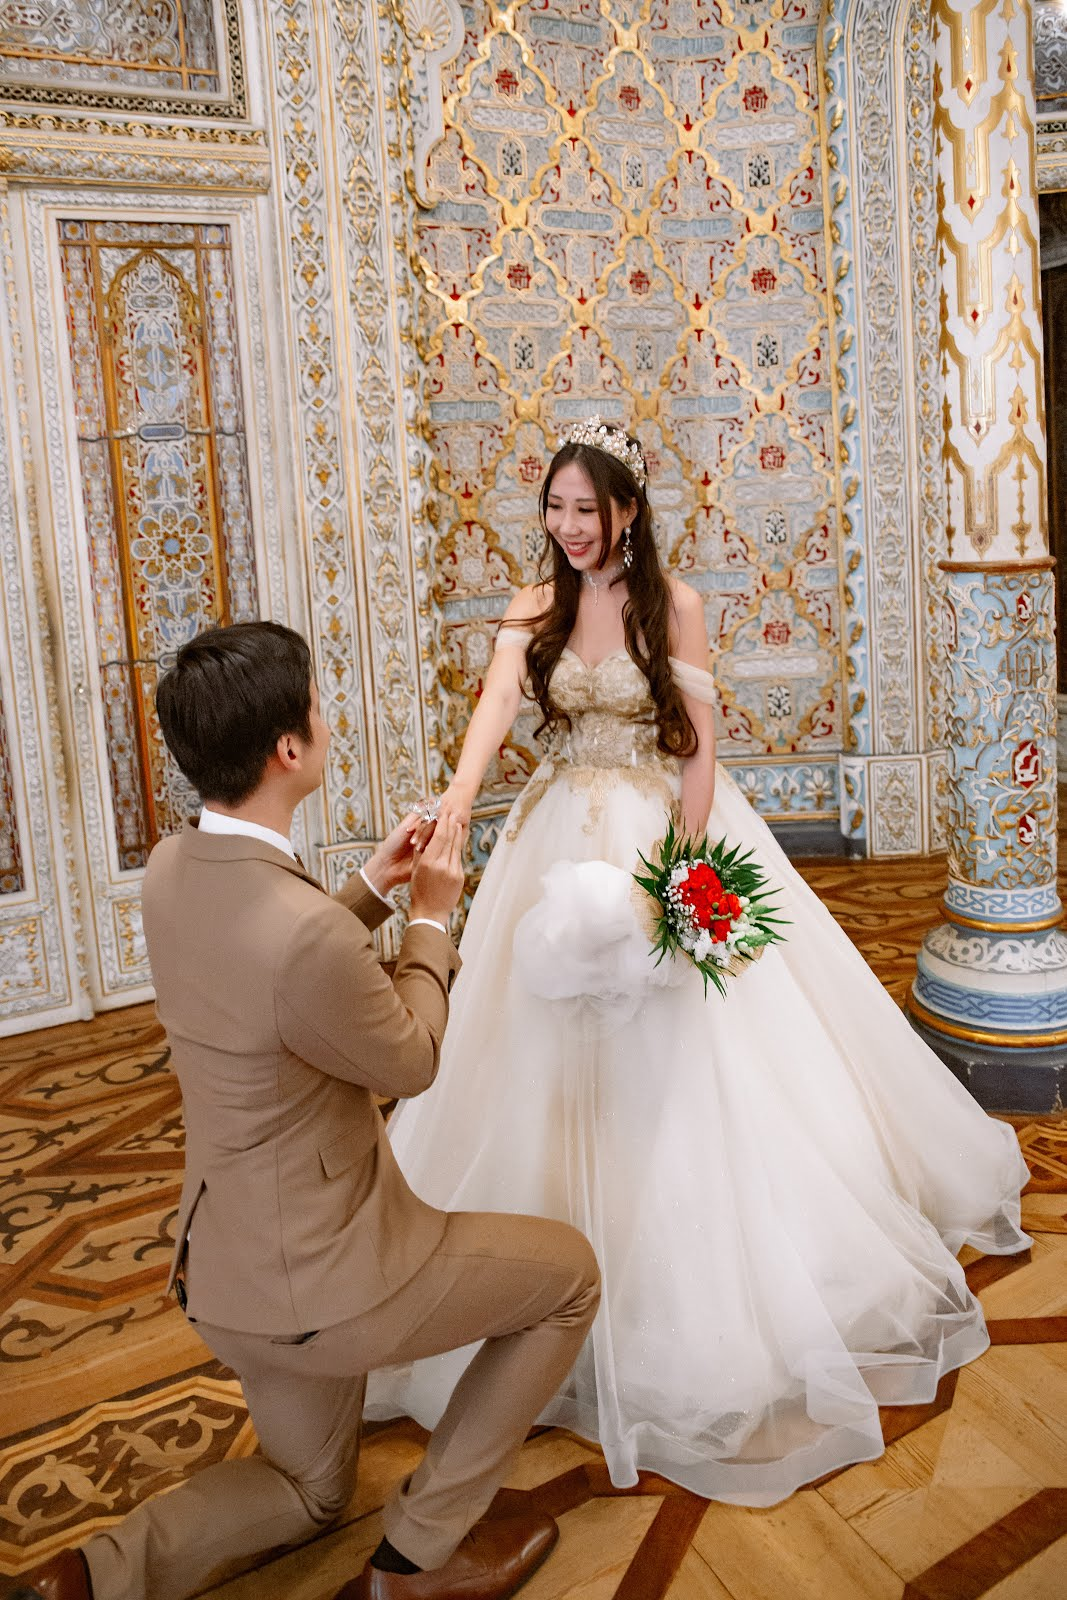 Dr VT & Sara Shantelle Lim's Pre-Wedding Photos at BOLSA PALACE Portugal (PART 1)